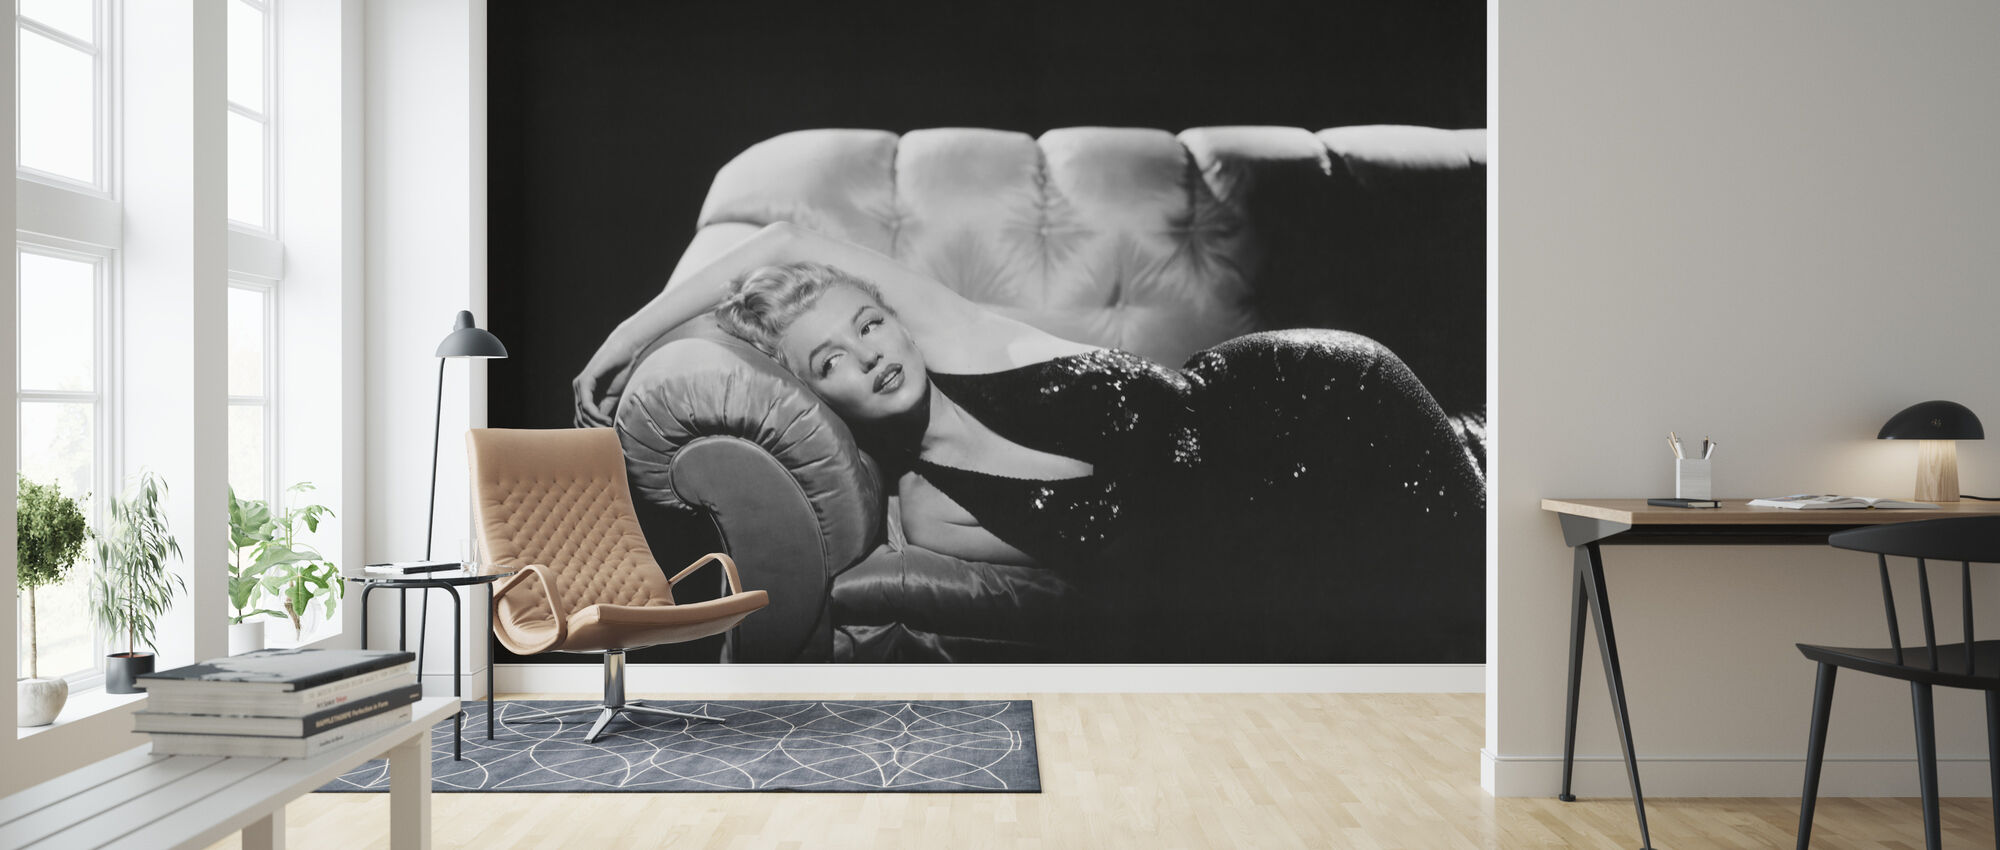 Marilyn Monroe In The Prince And The Showgirl Popular Wall Mural